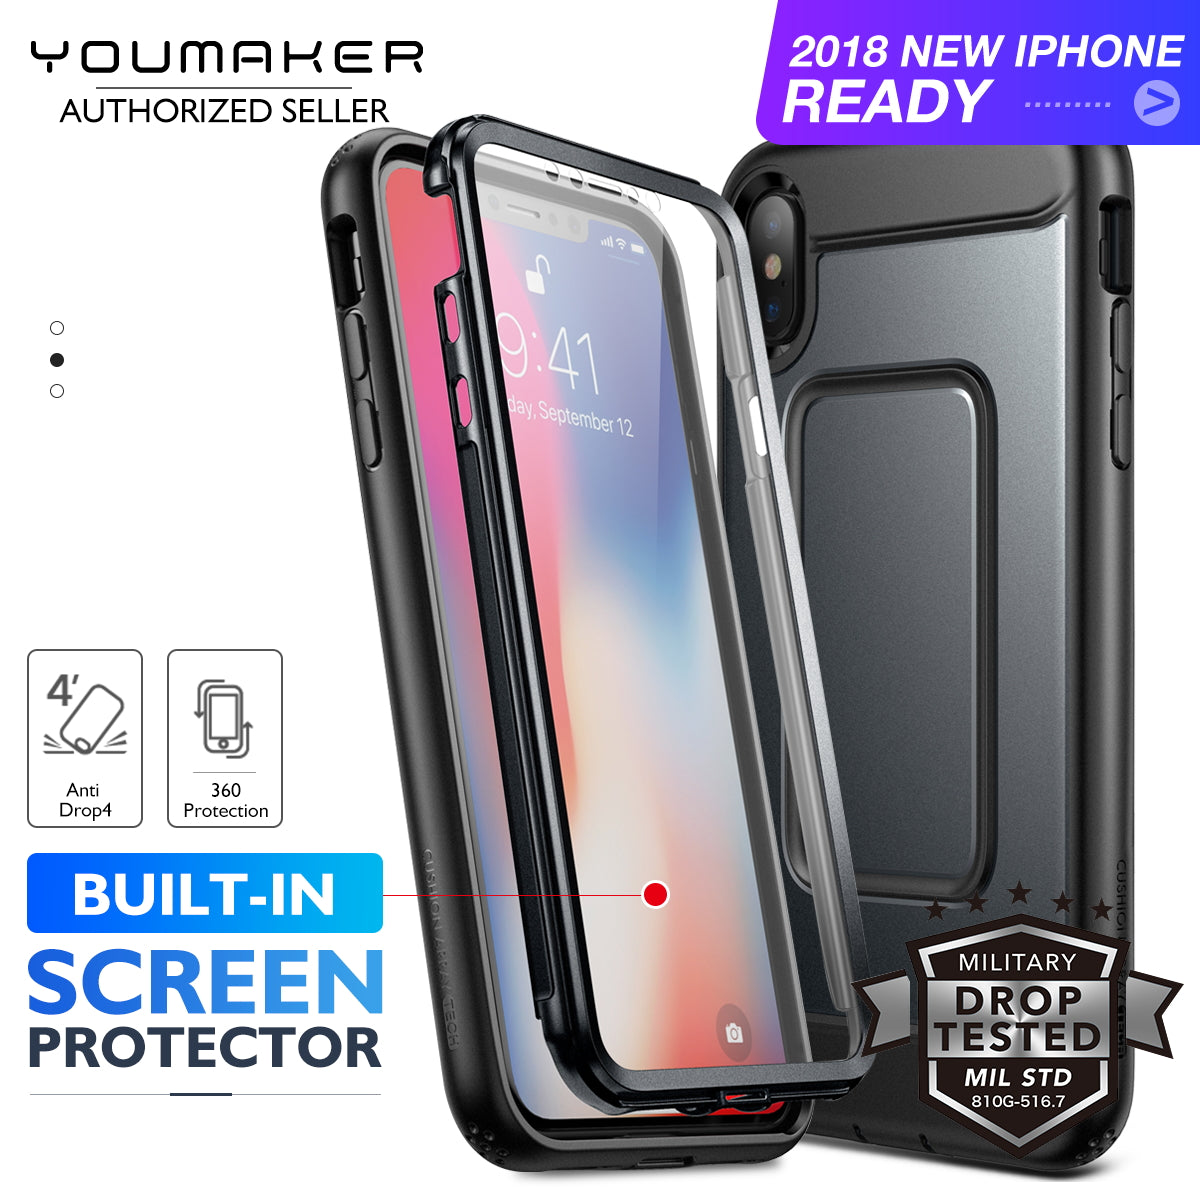 YOUMAKER iPhone X Heavy Duty Shockproof Full-body Case Cover